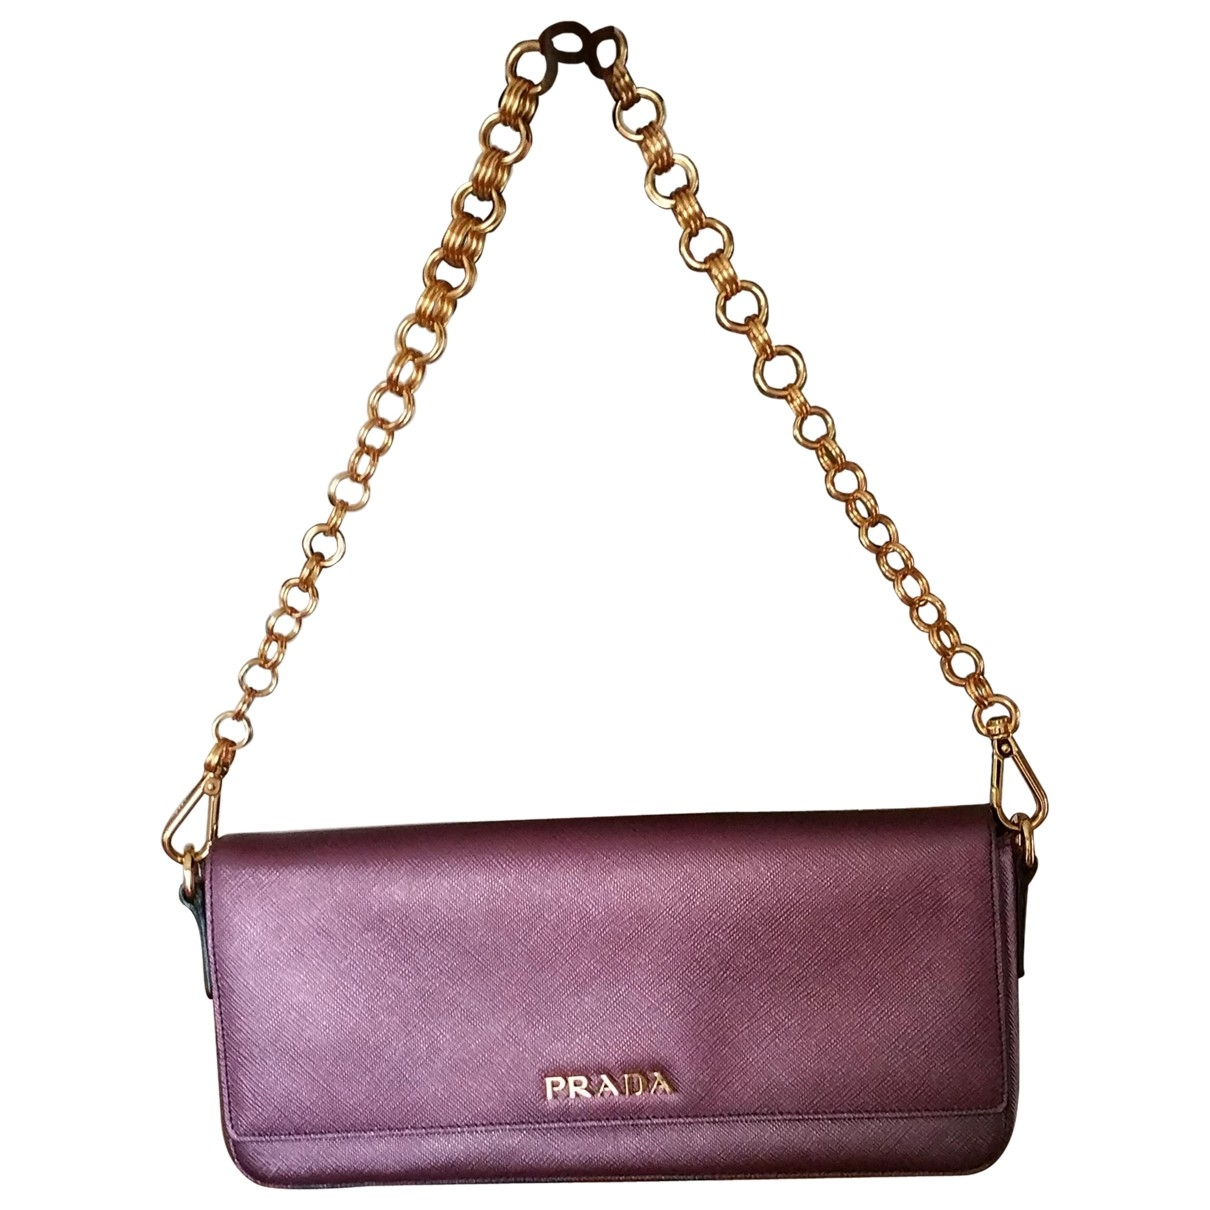 Prada \N Purple Leather Clutch bag for Women \N